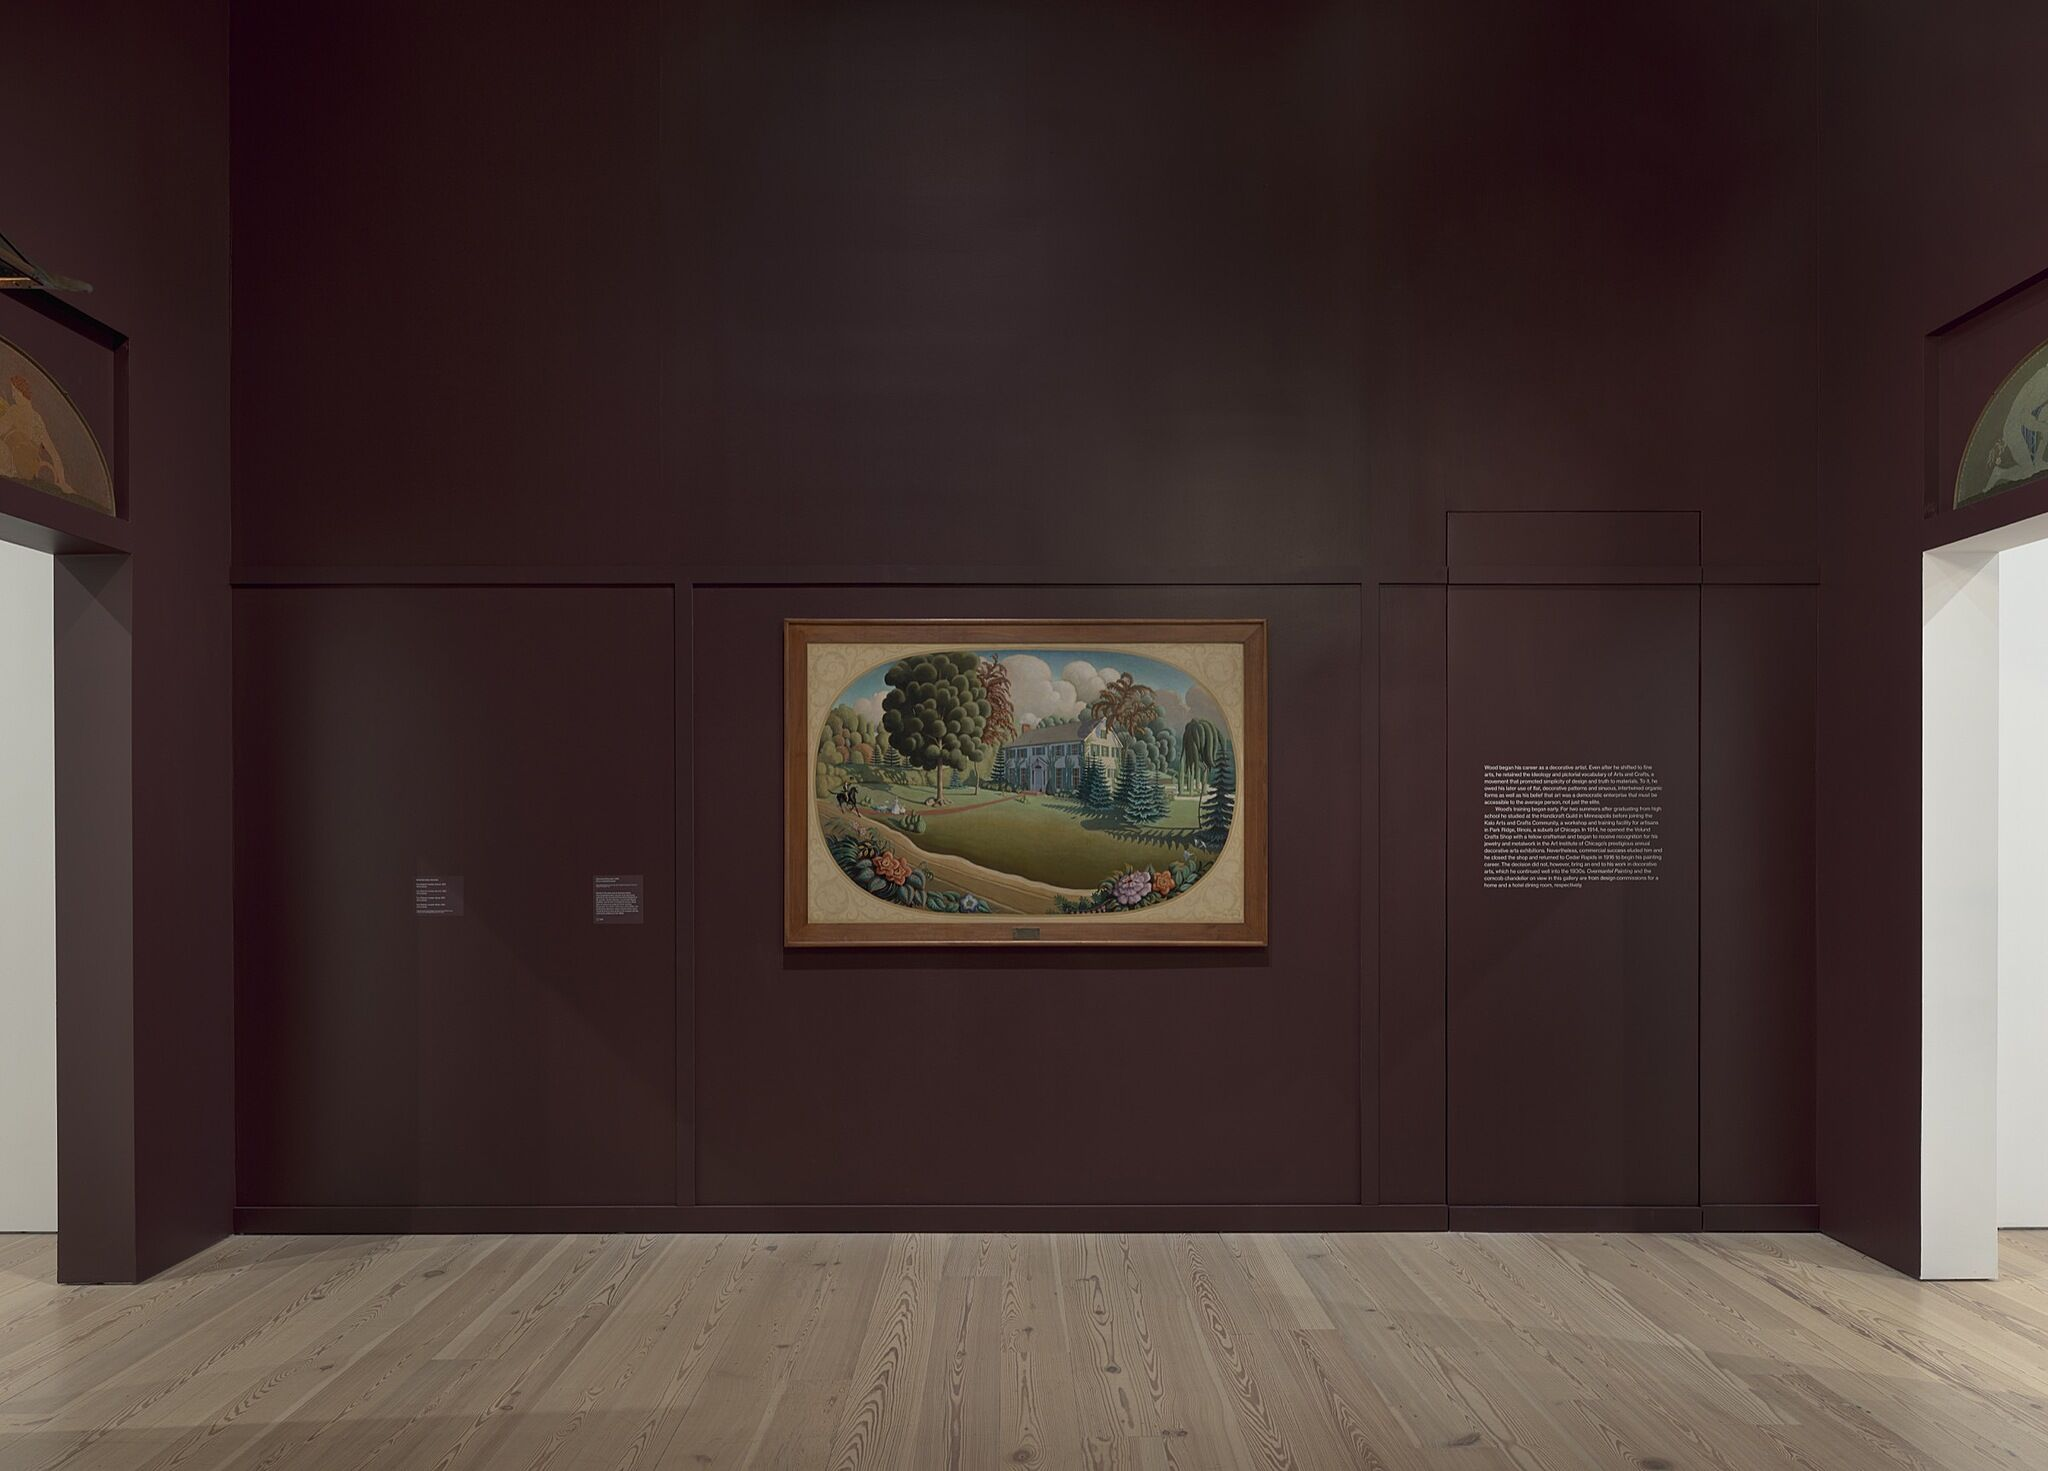 A painting of a landscape and building on a deep purple gallery wall.